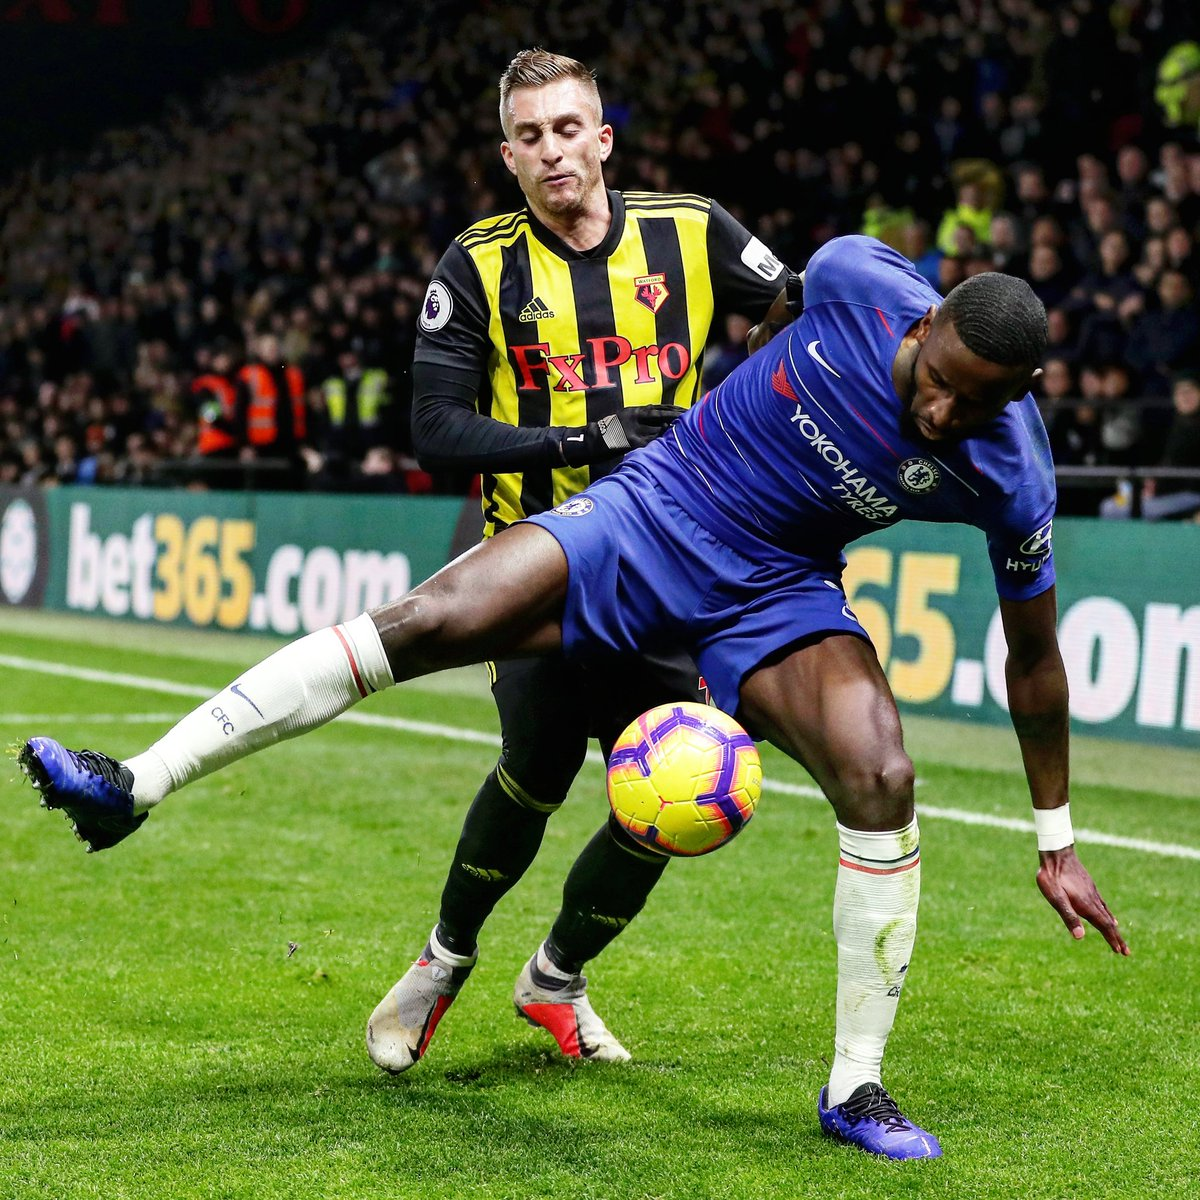 Boxing Day + 3 points = 💙⚽ #Hustle #AlwaysBelieve #MerryChristmas🎄 @chelseafc